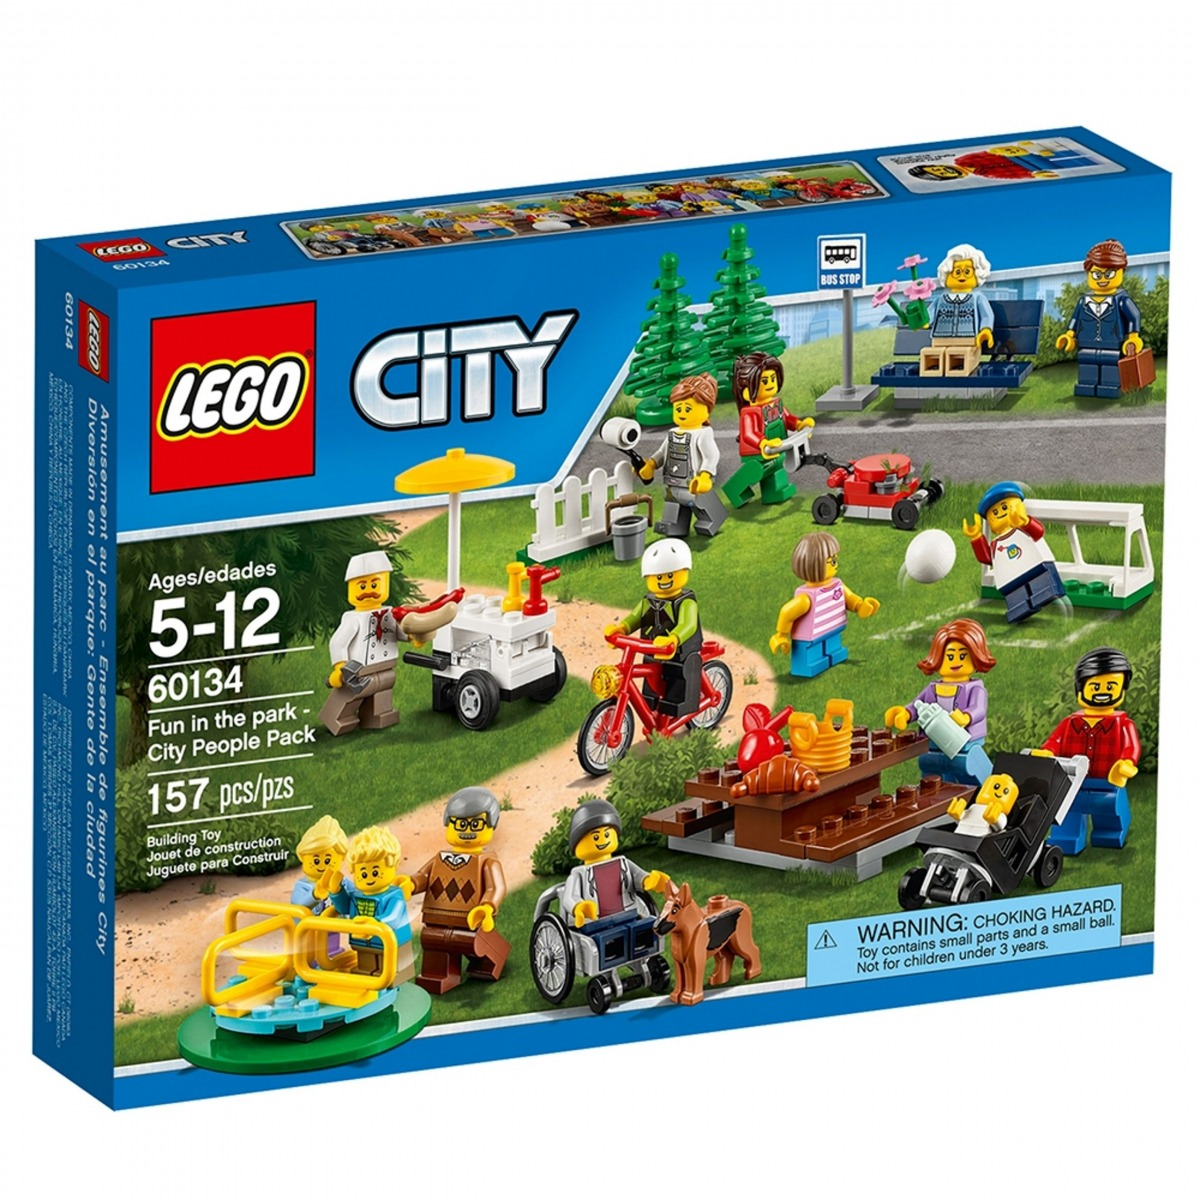 lego 60134 fun in the park city people pack scaled